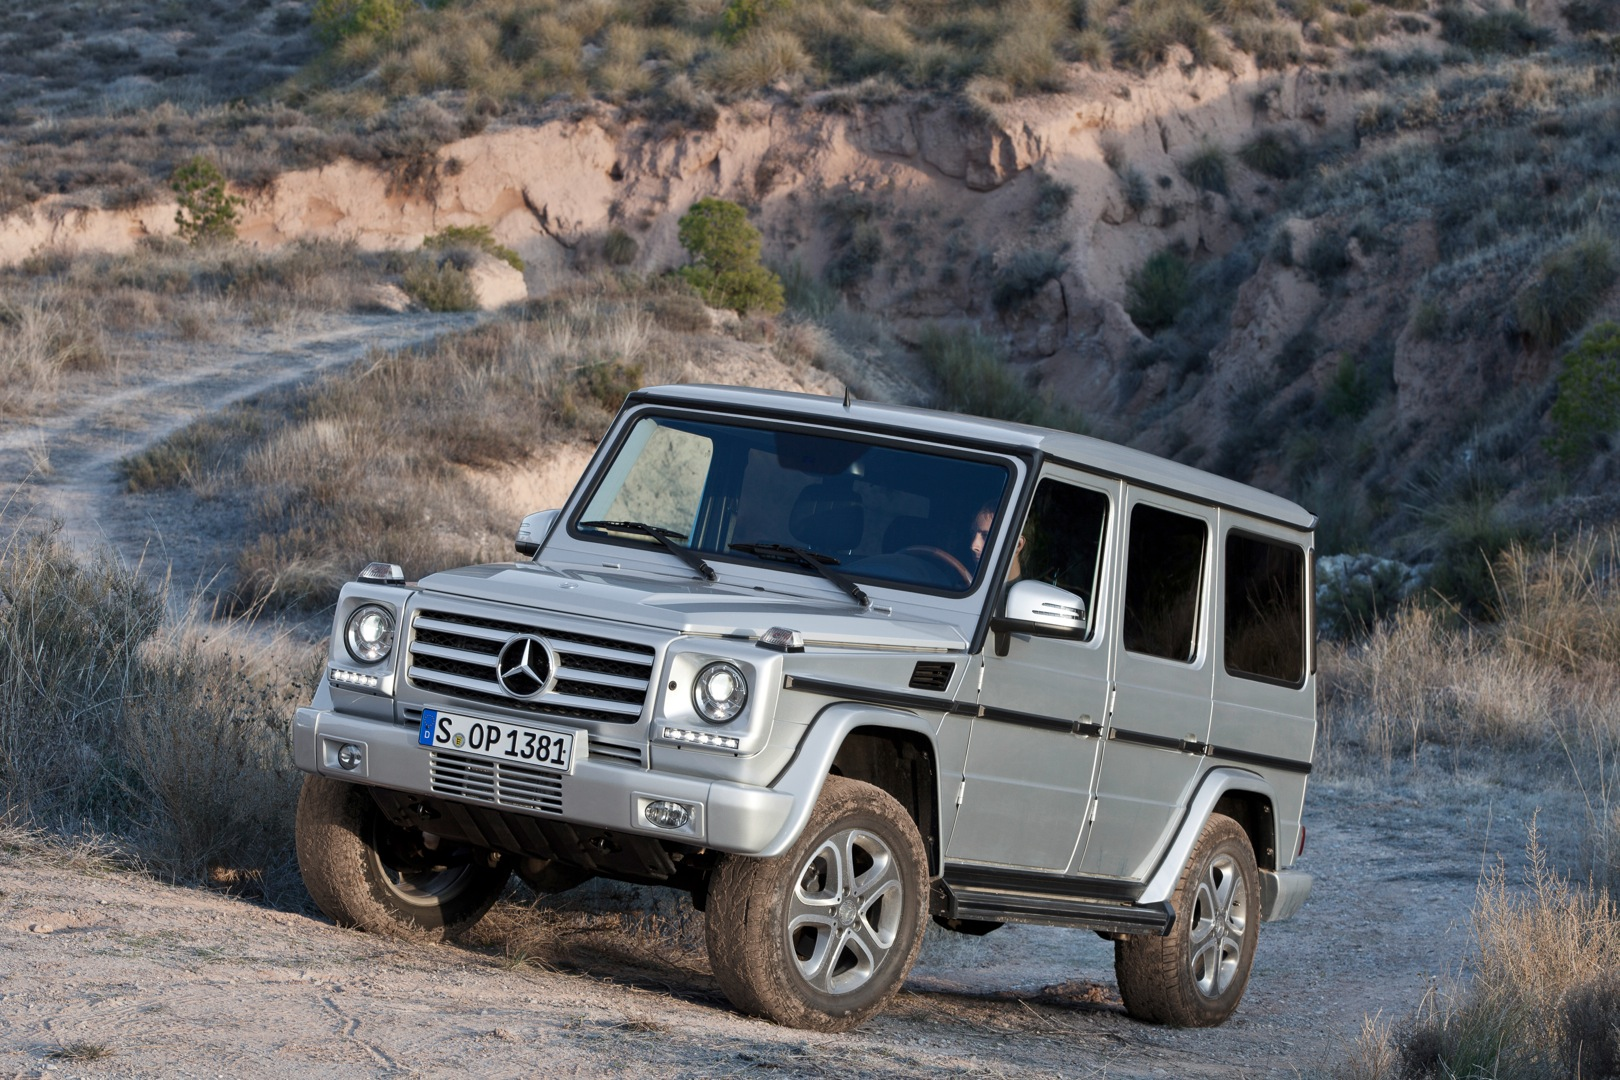 mercedes benz g klasse w463 specs 2012 2013 2014 2015 2016 2017 2018 autoevolution. Black Bedroom Furniture Sets. Home Design Ideas